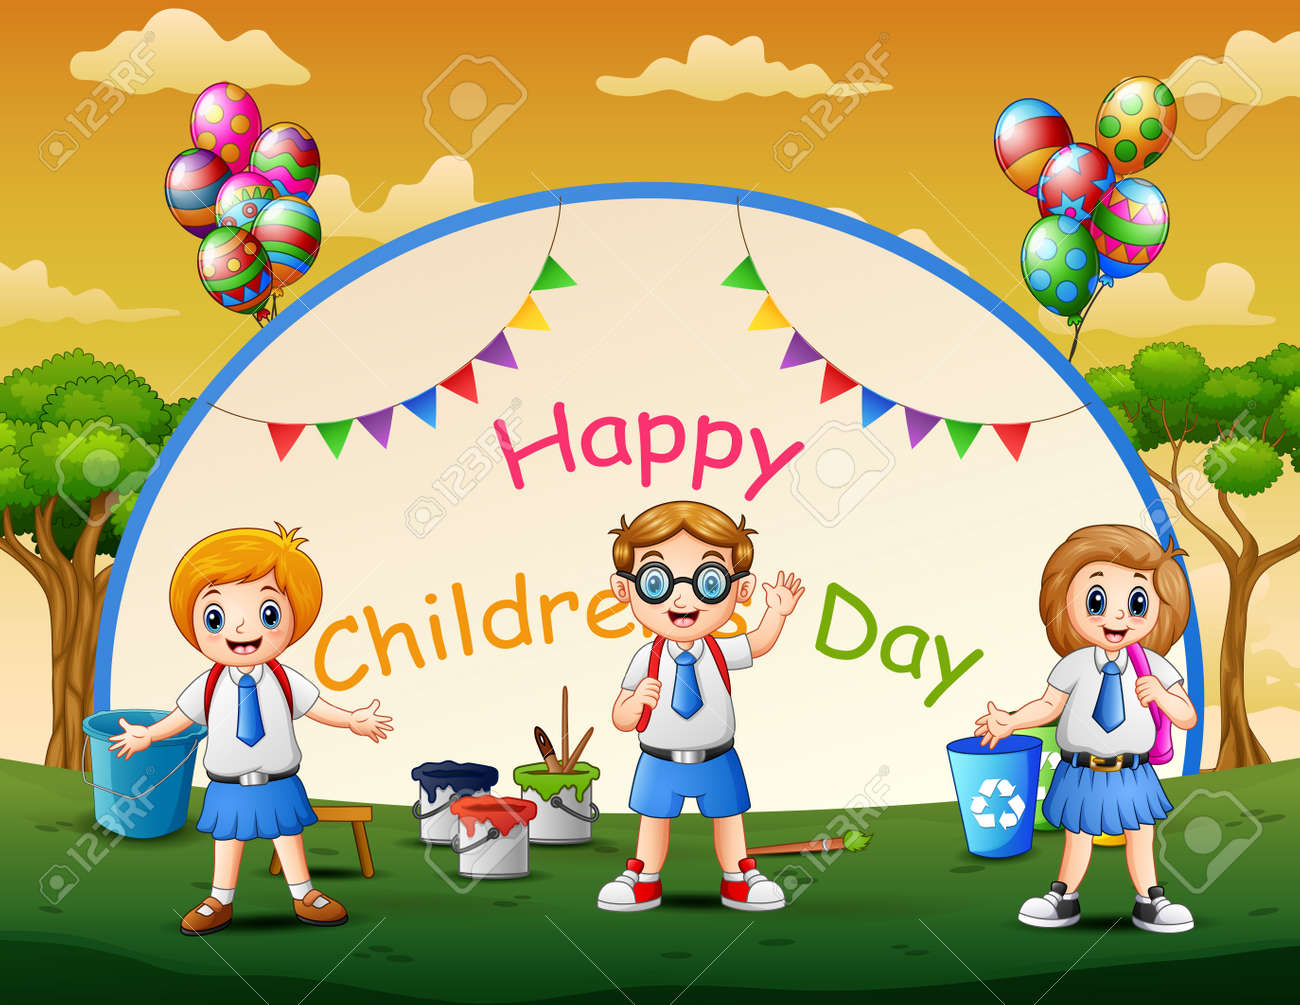 Happy children's day poster with students in the park - 157239519